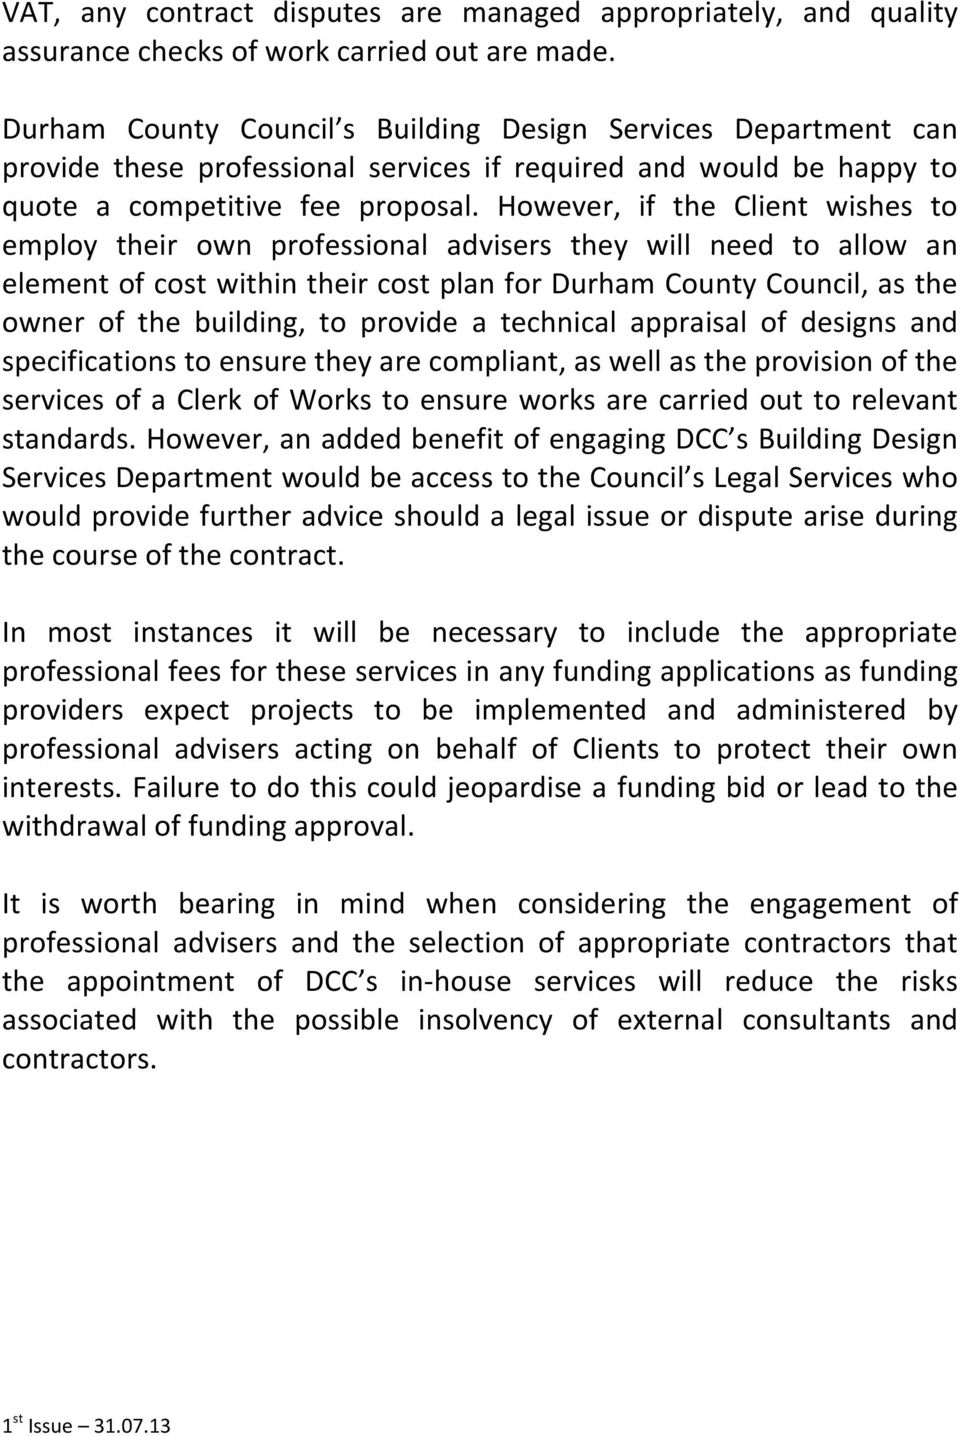 However, if the Client wishes to employ their own professional advisers they will need to allow an element of cost within their cost plan for Durham County Council, as the owner of the building, to